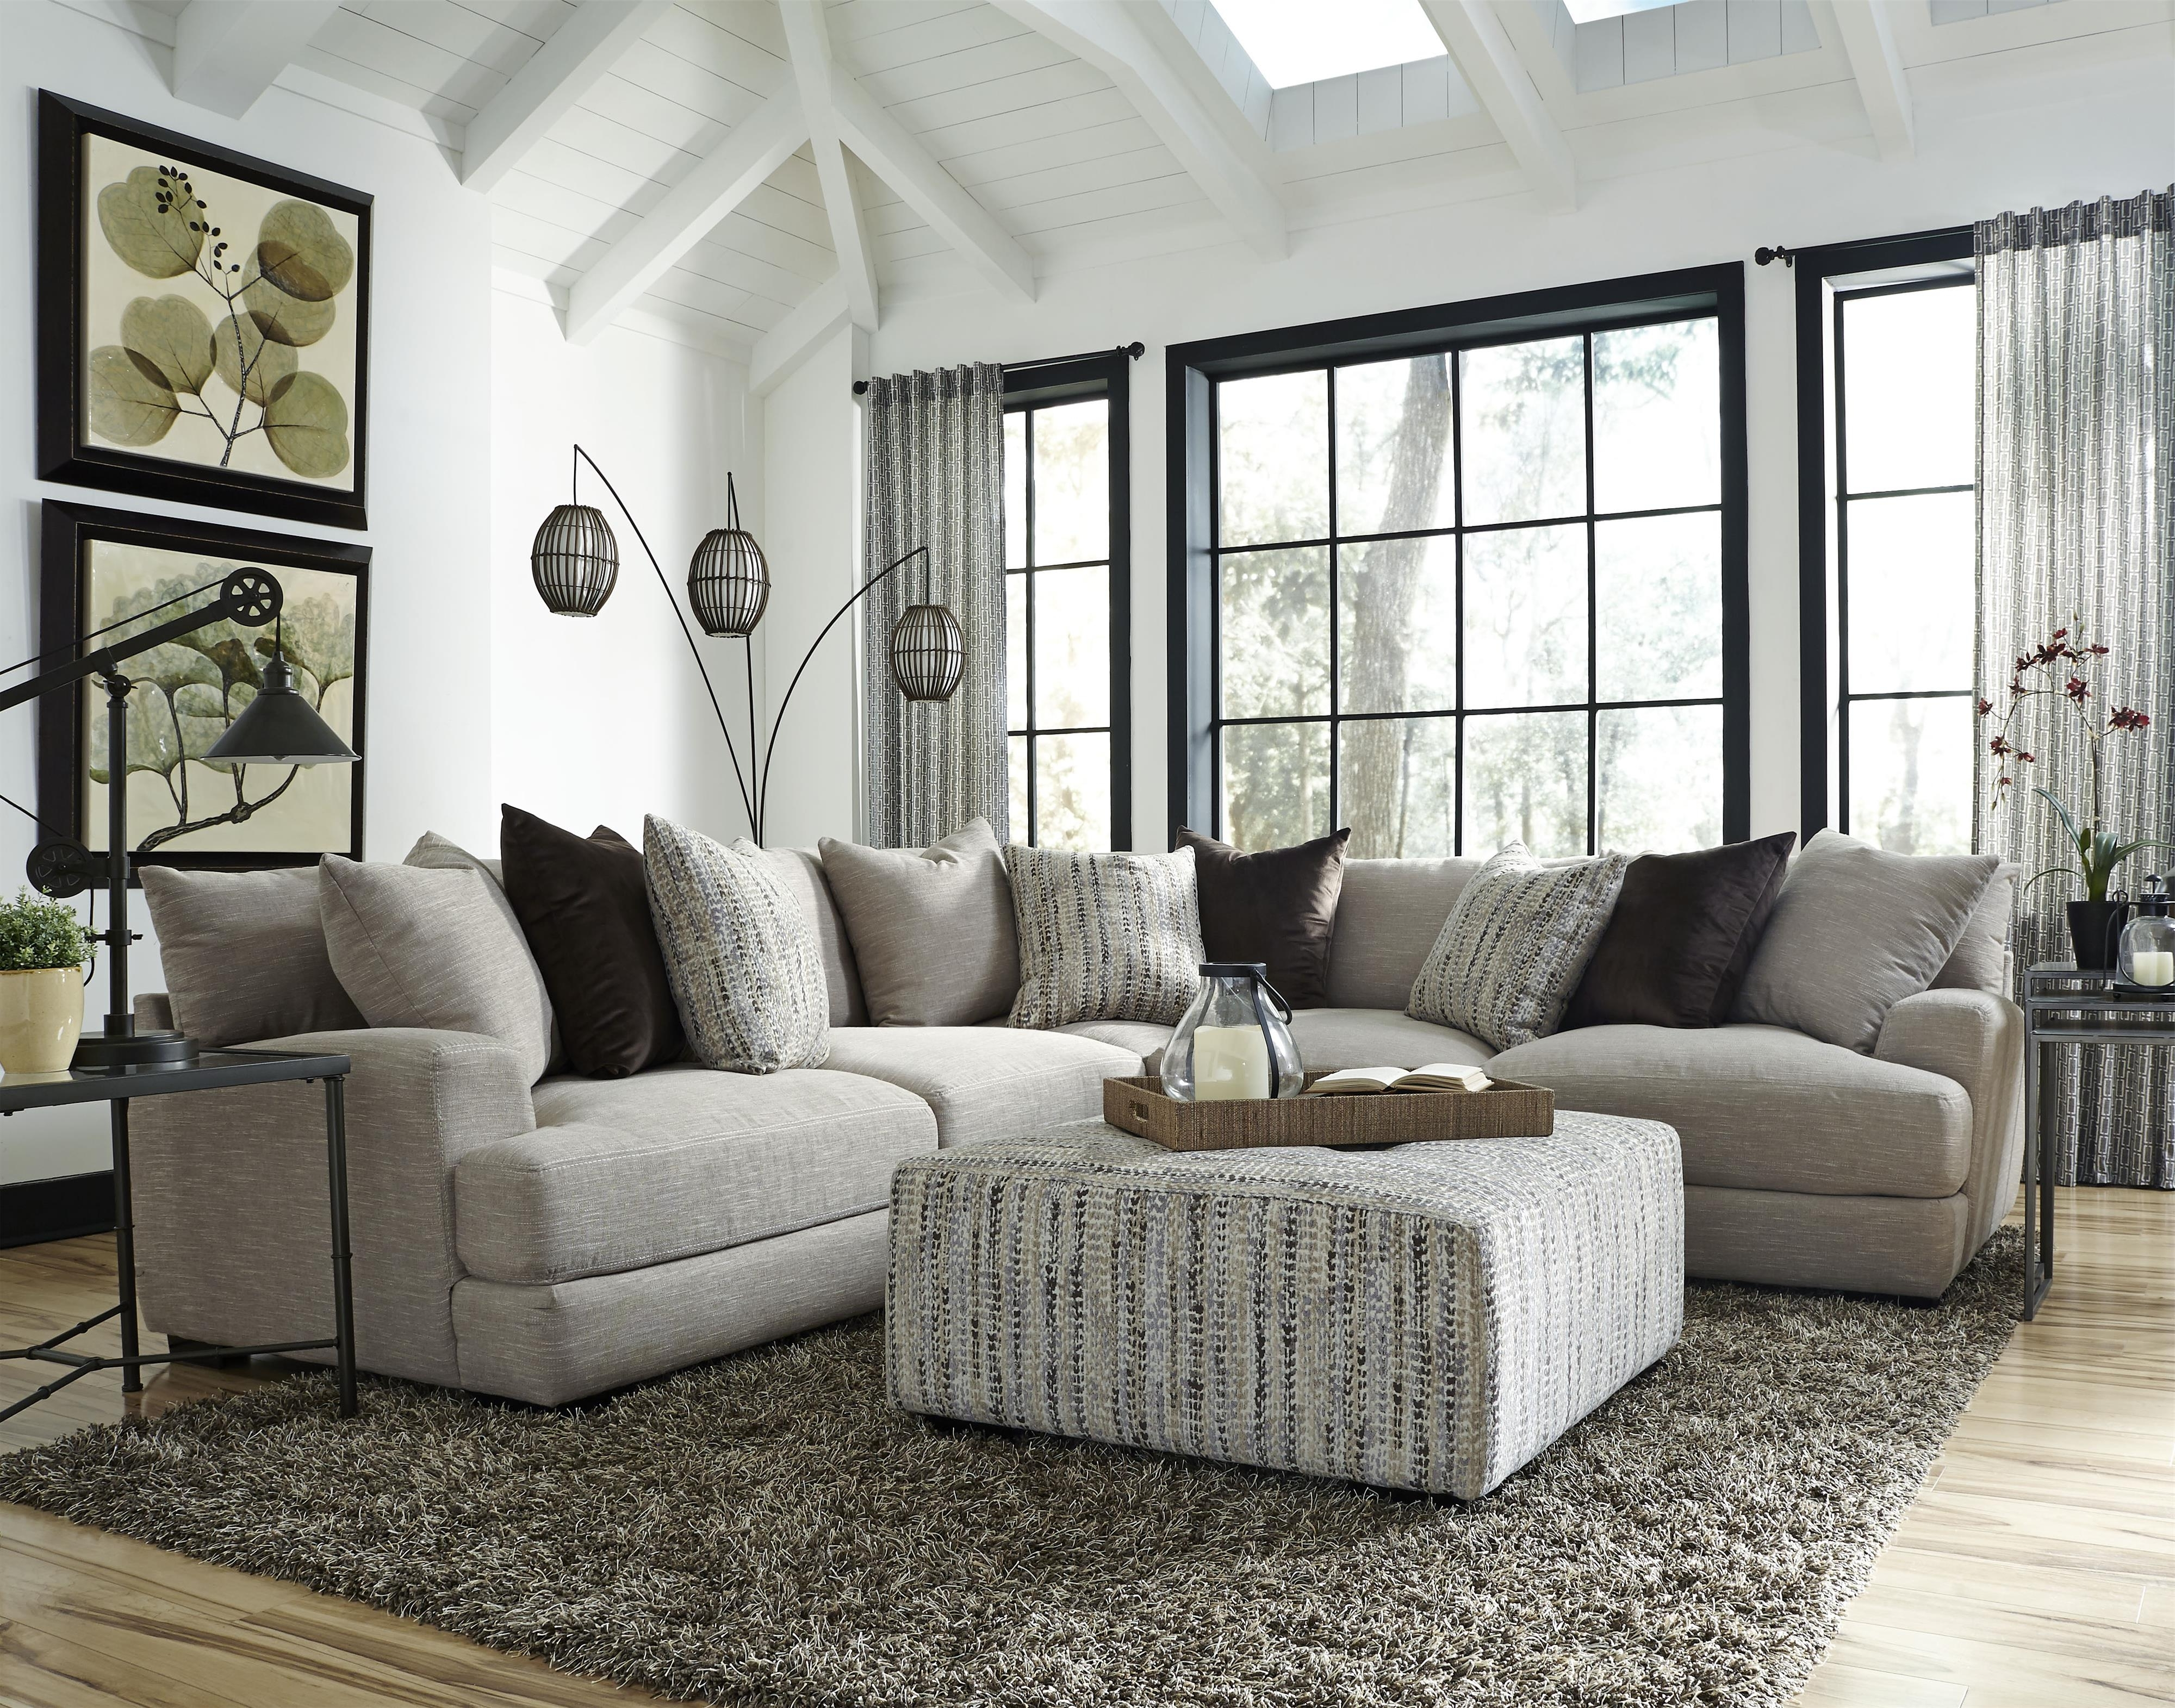 Miskelly Furniture Regarding Well Liked Jackson Ms Sectional Sofas (View 9 of 20)